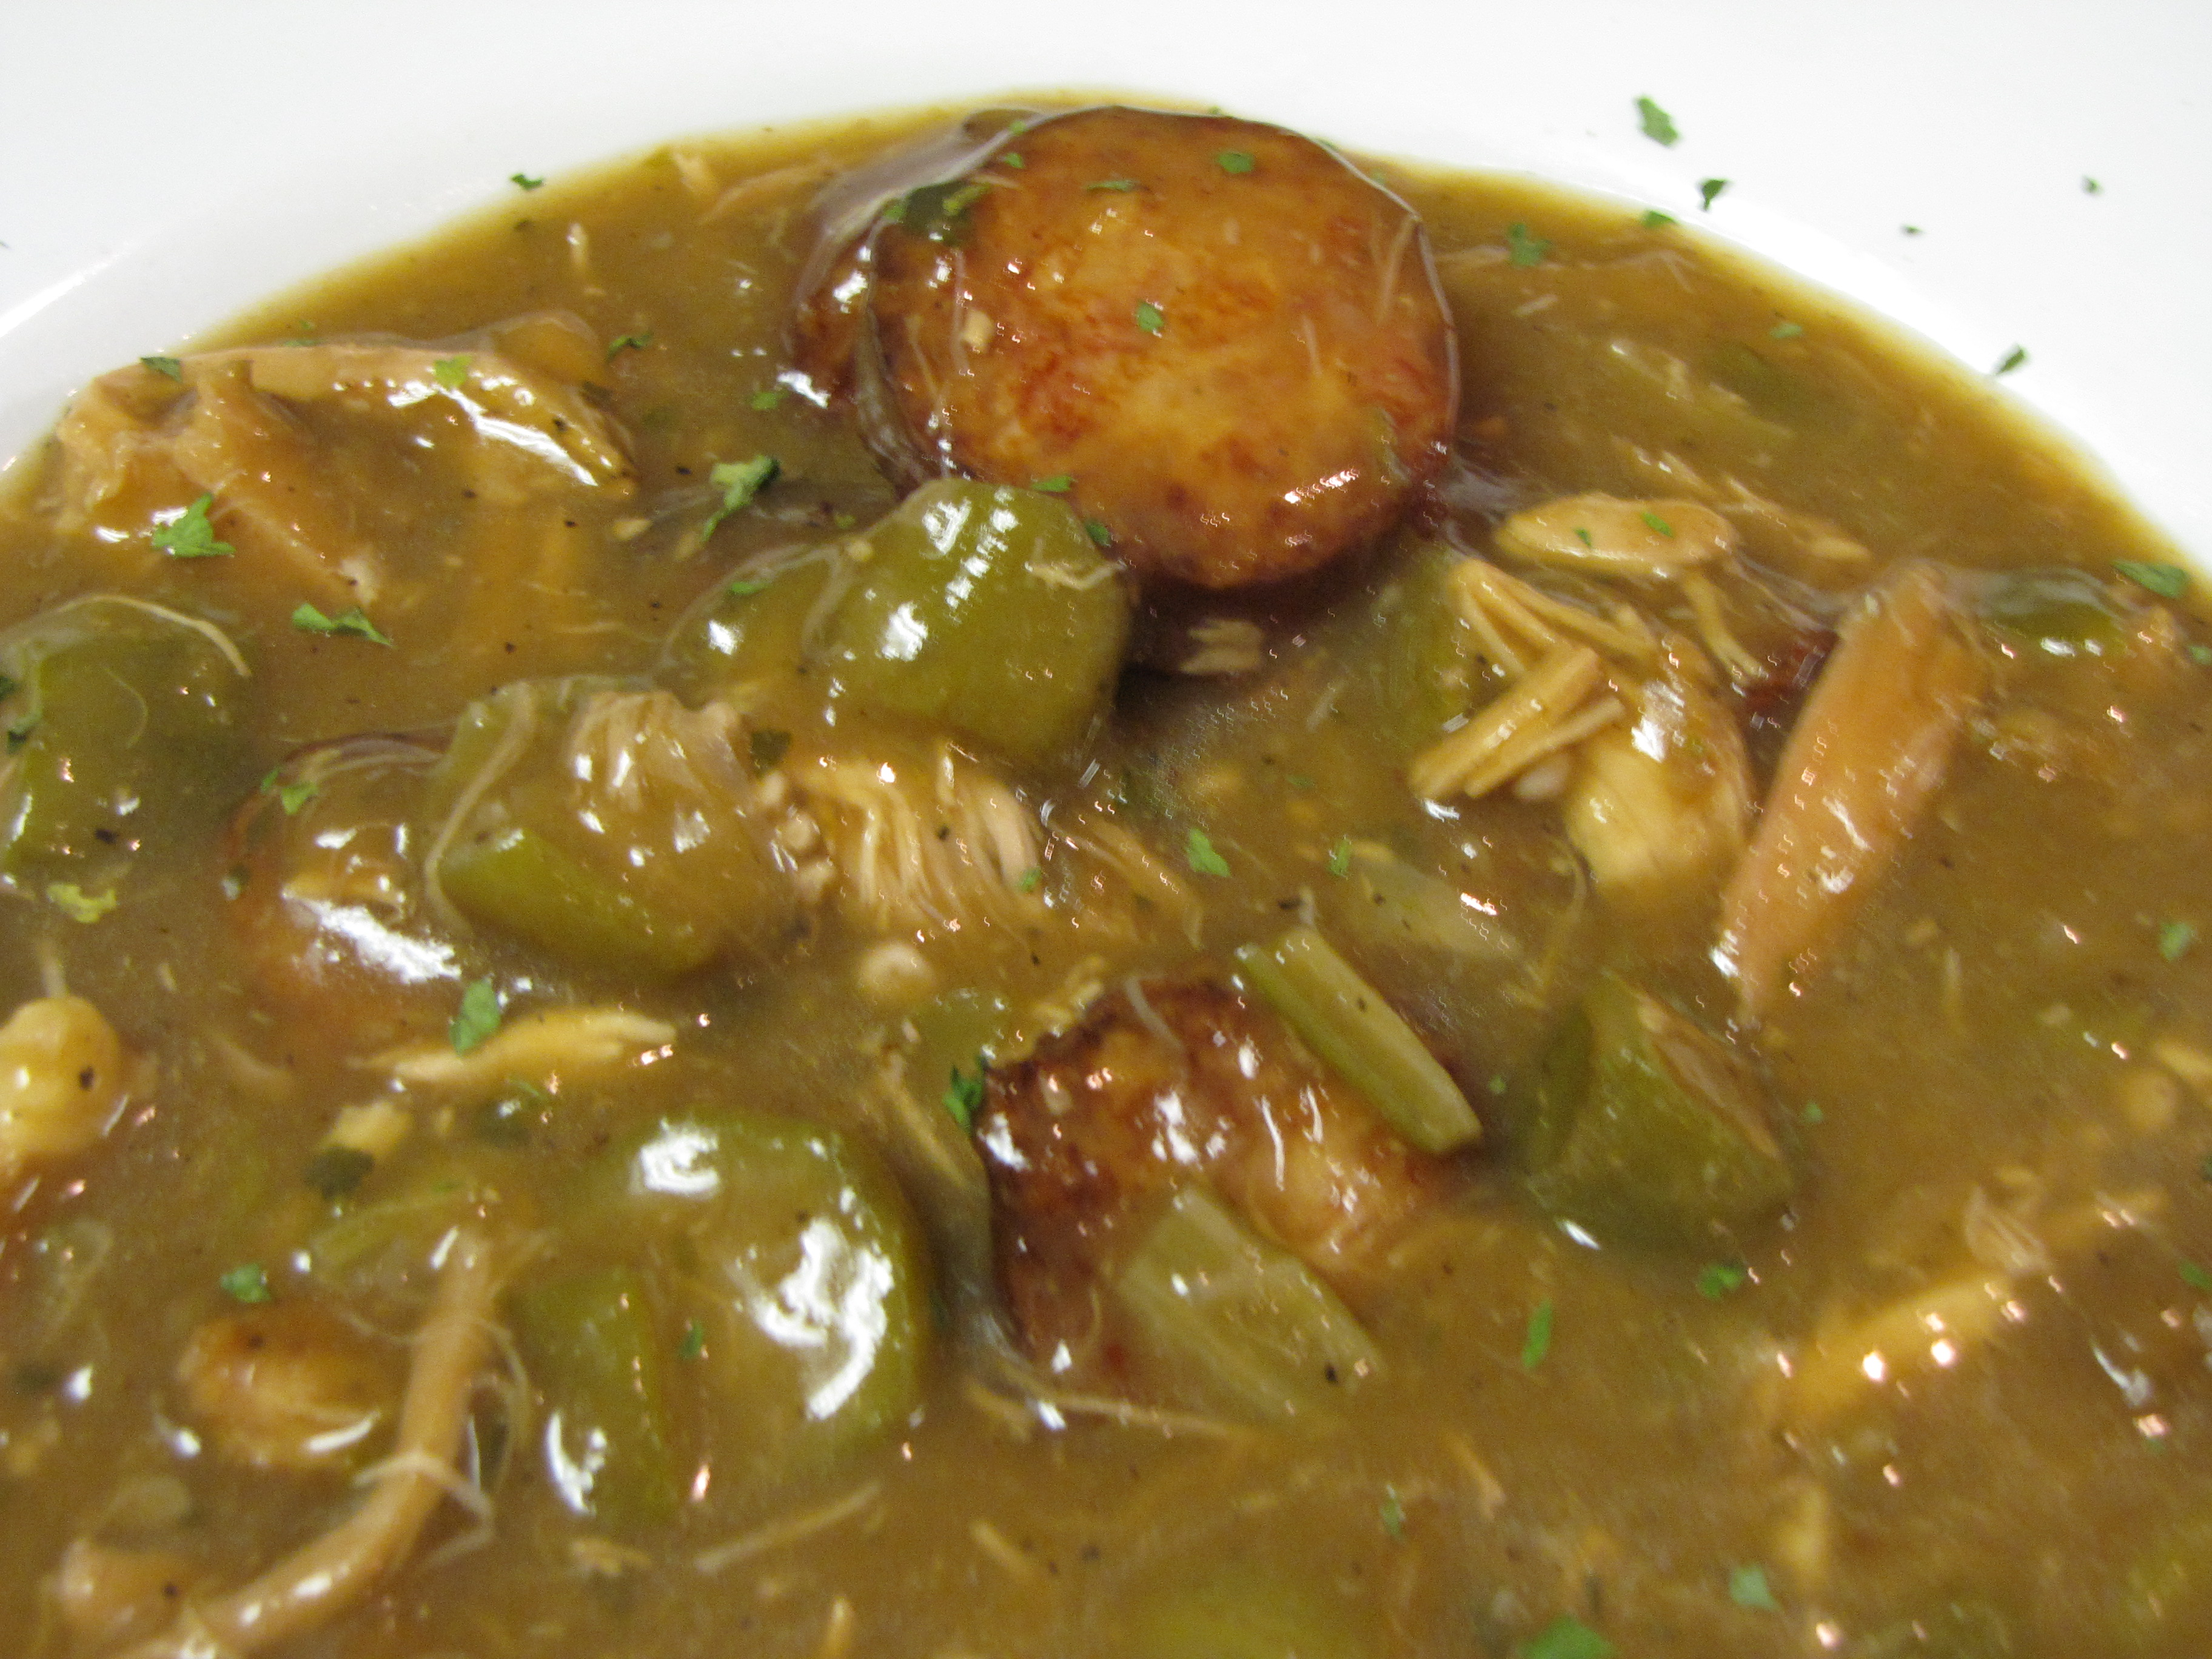 Chicken and Sausage Gumbo - Frank's Restaurant